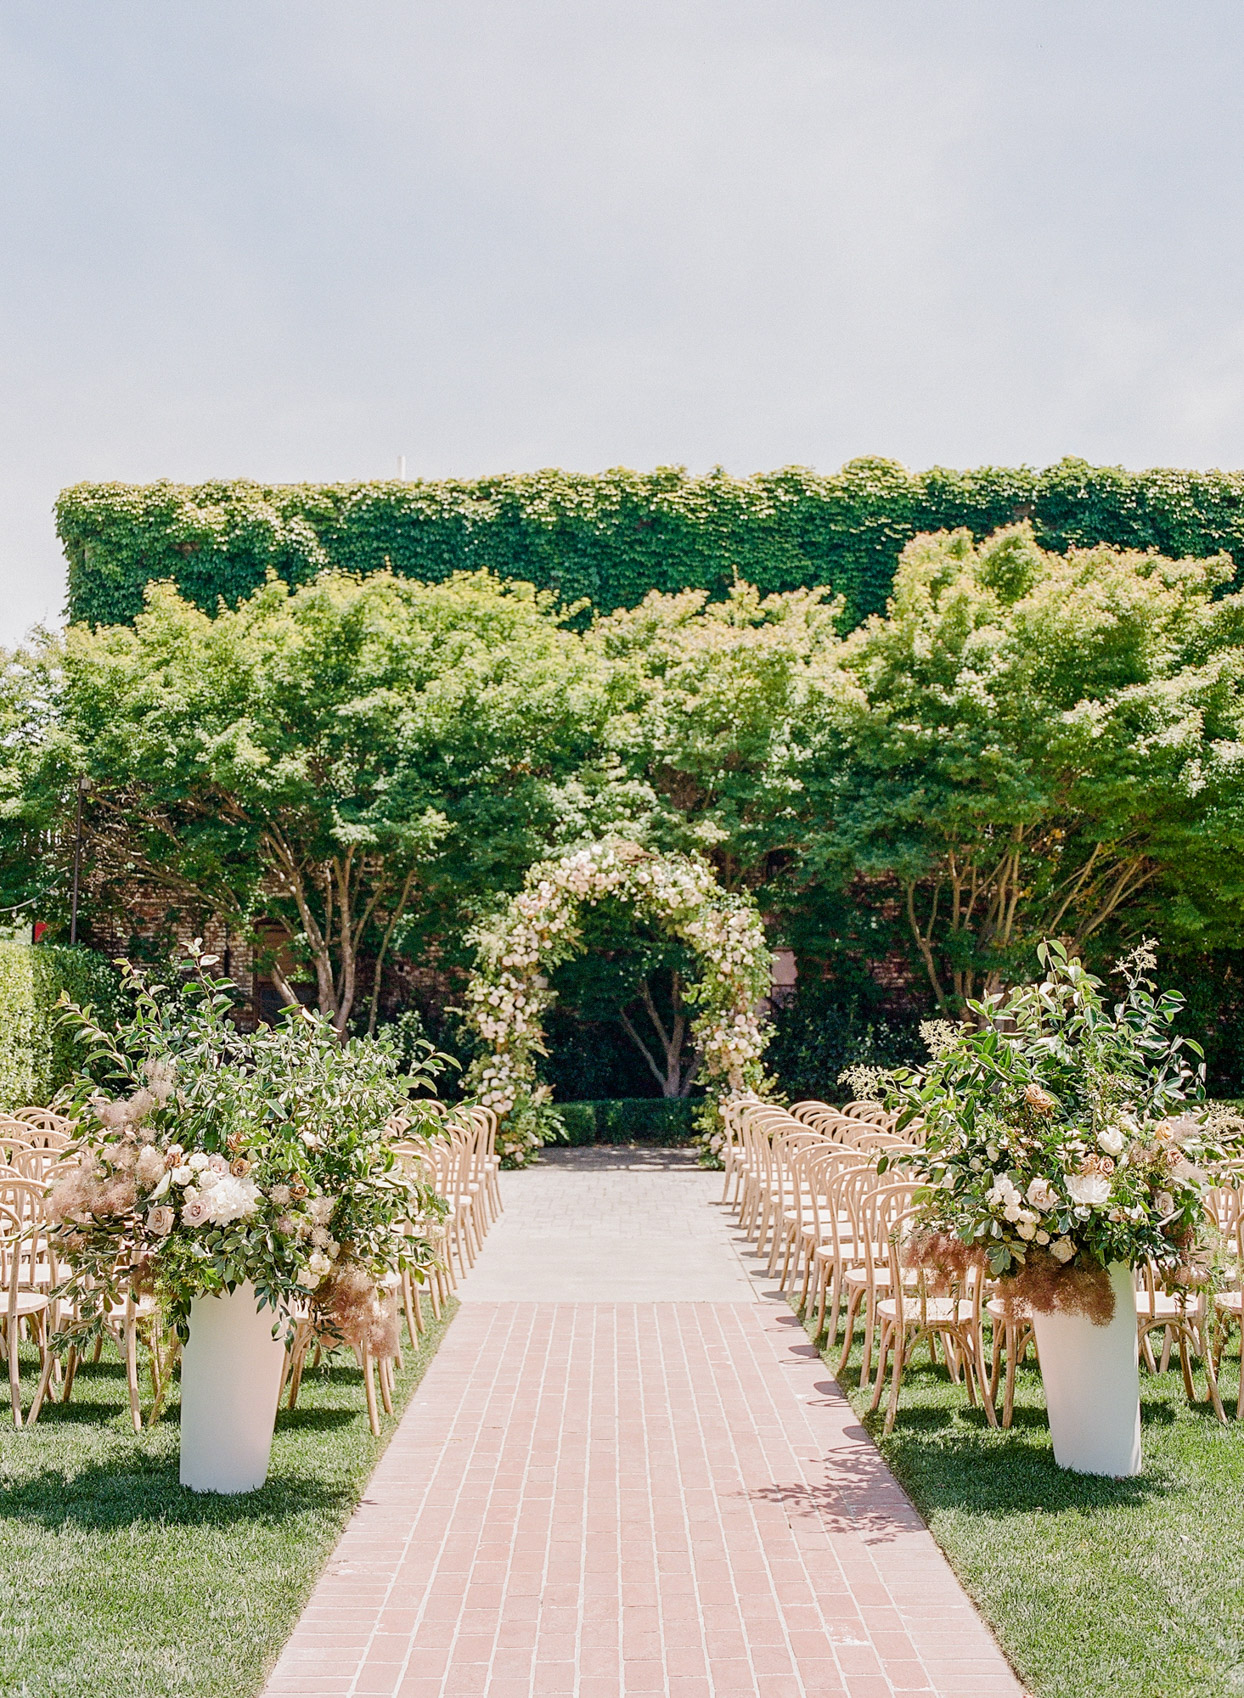 outdoor wedding ceremony set up with chairs and archway